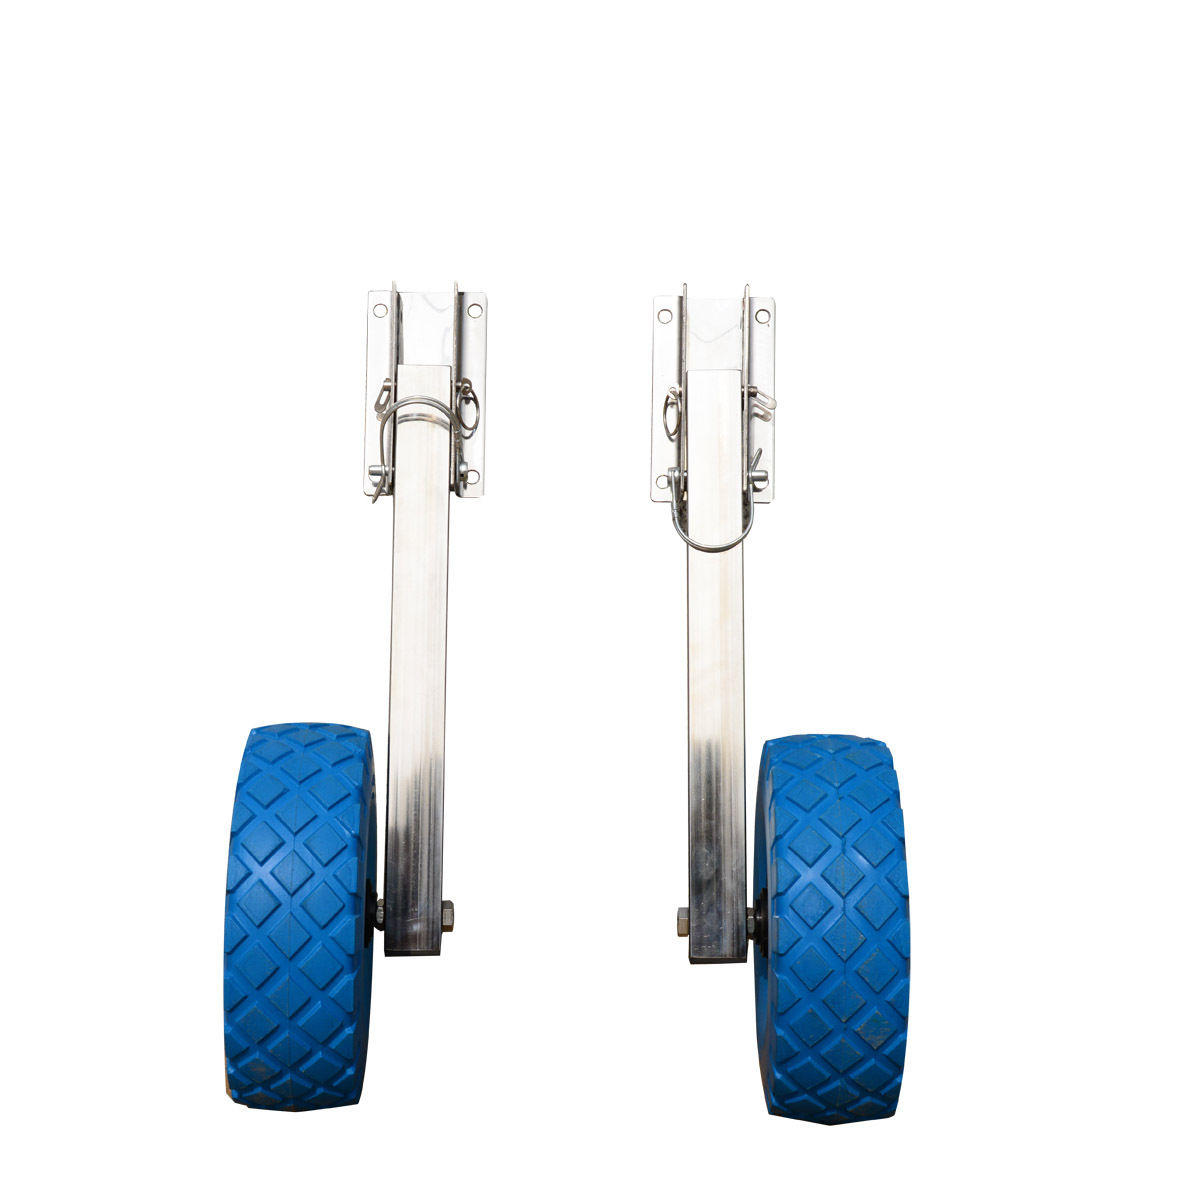 Stainless Steel Boat Transom Wheel Launching Dolly For Inflatable Boat